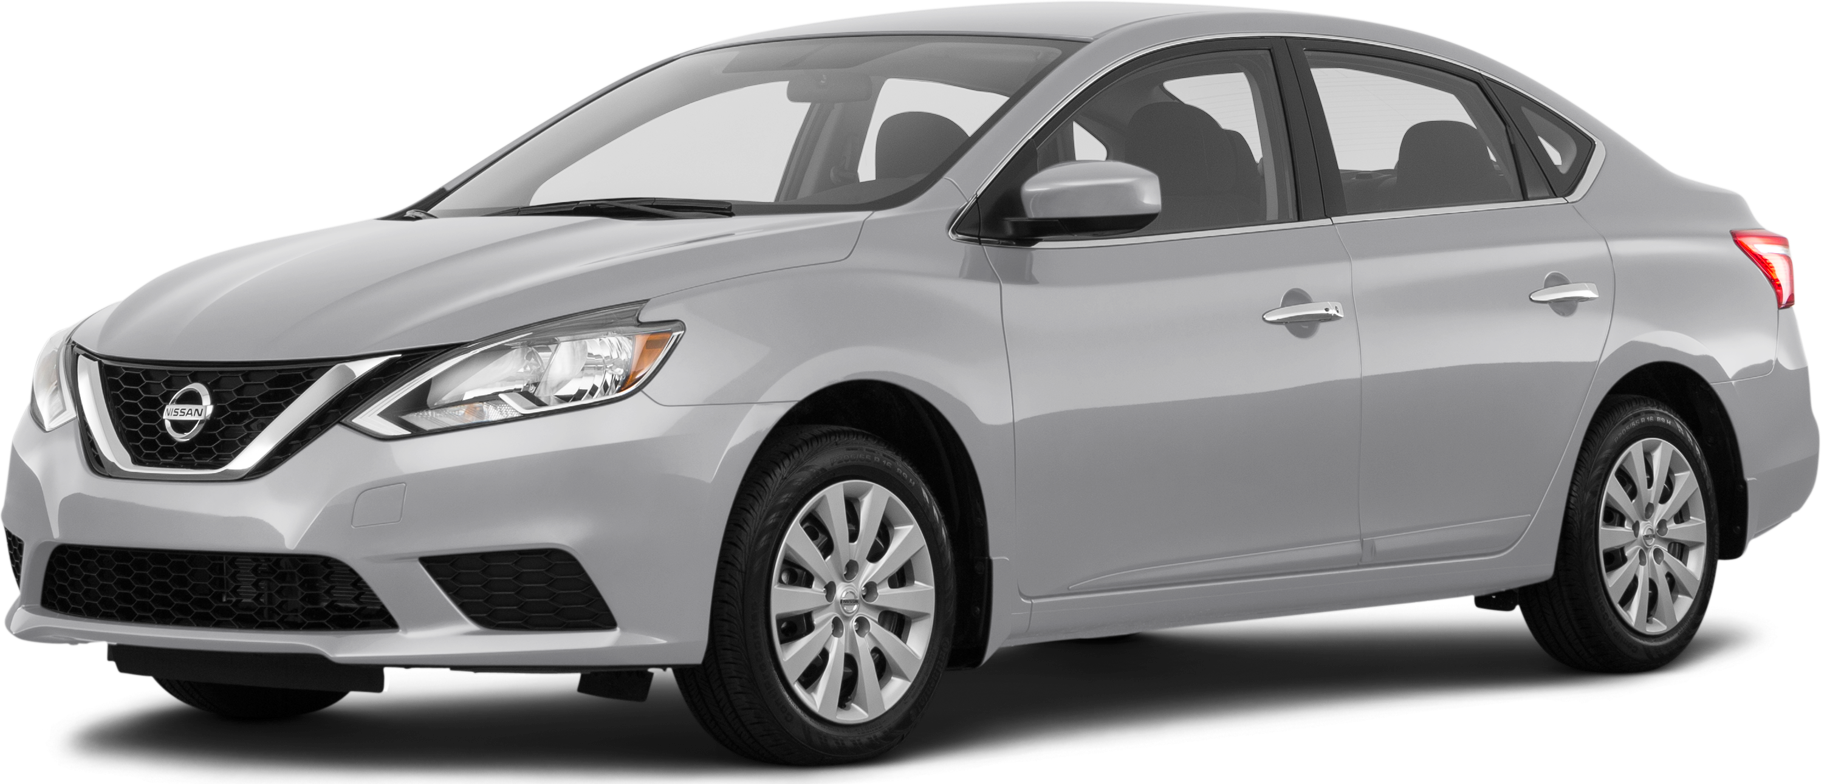 Used 2017 Toyota Corolla Values Cars For Sale Kelley Blue Book